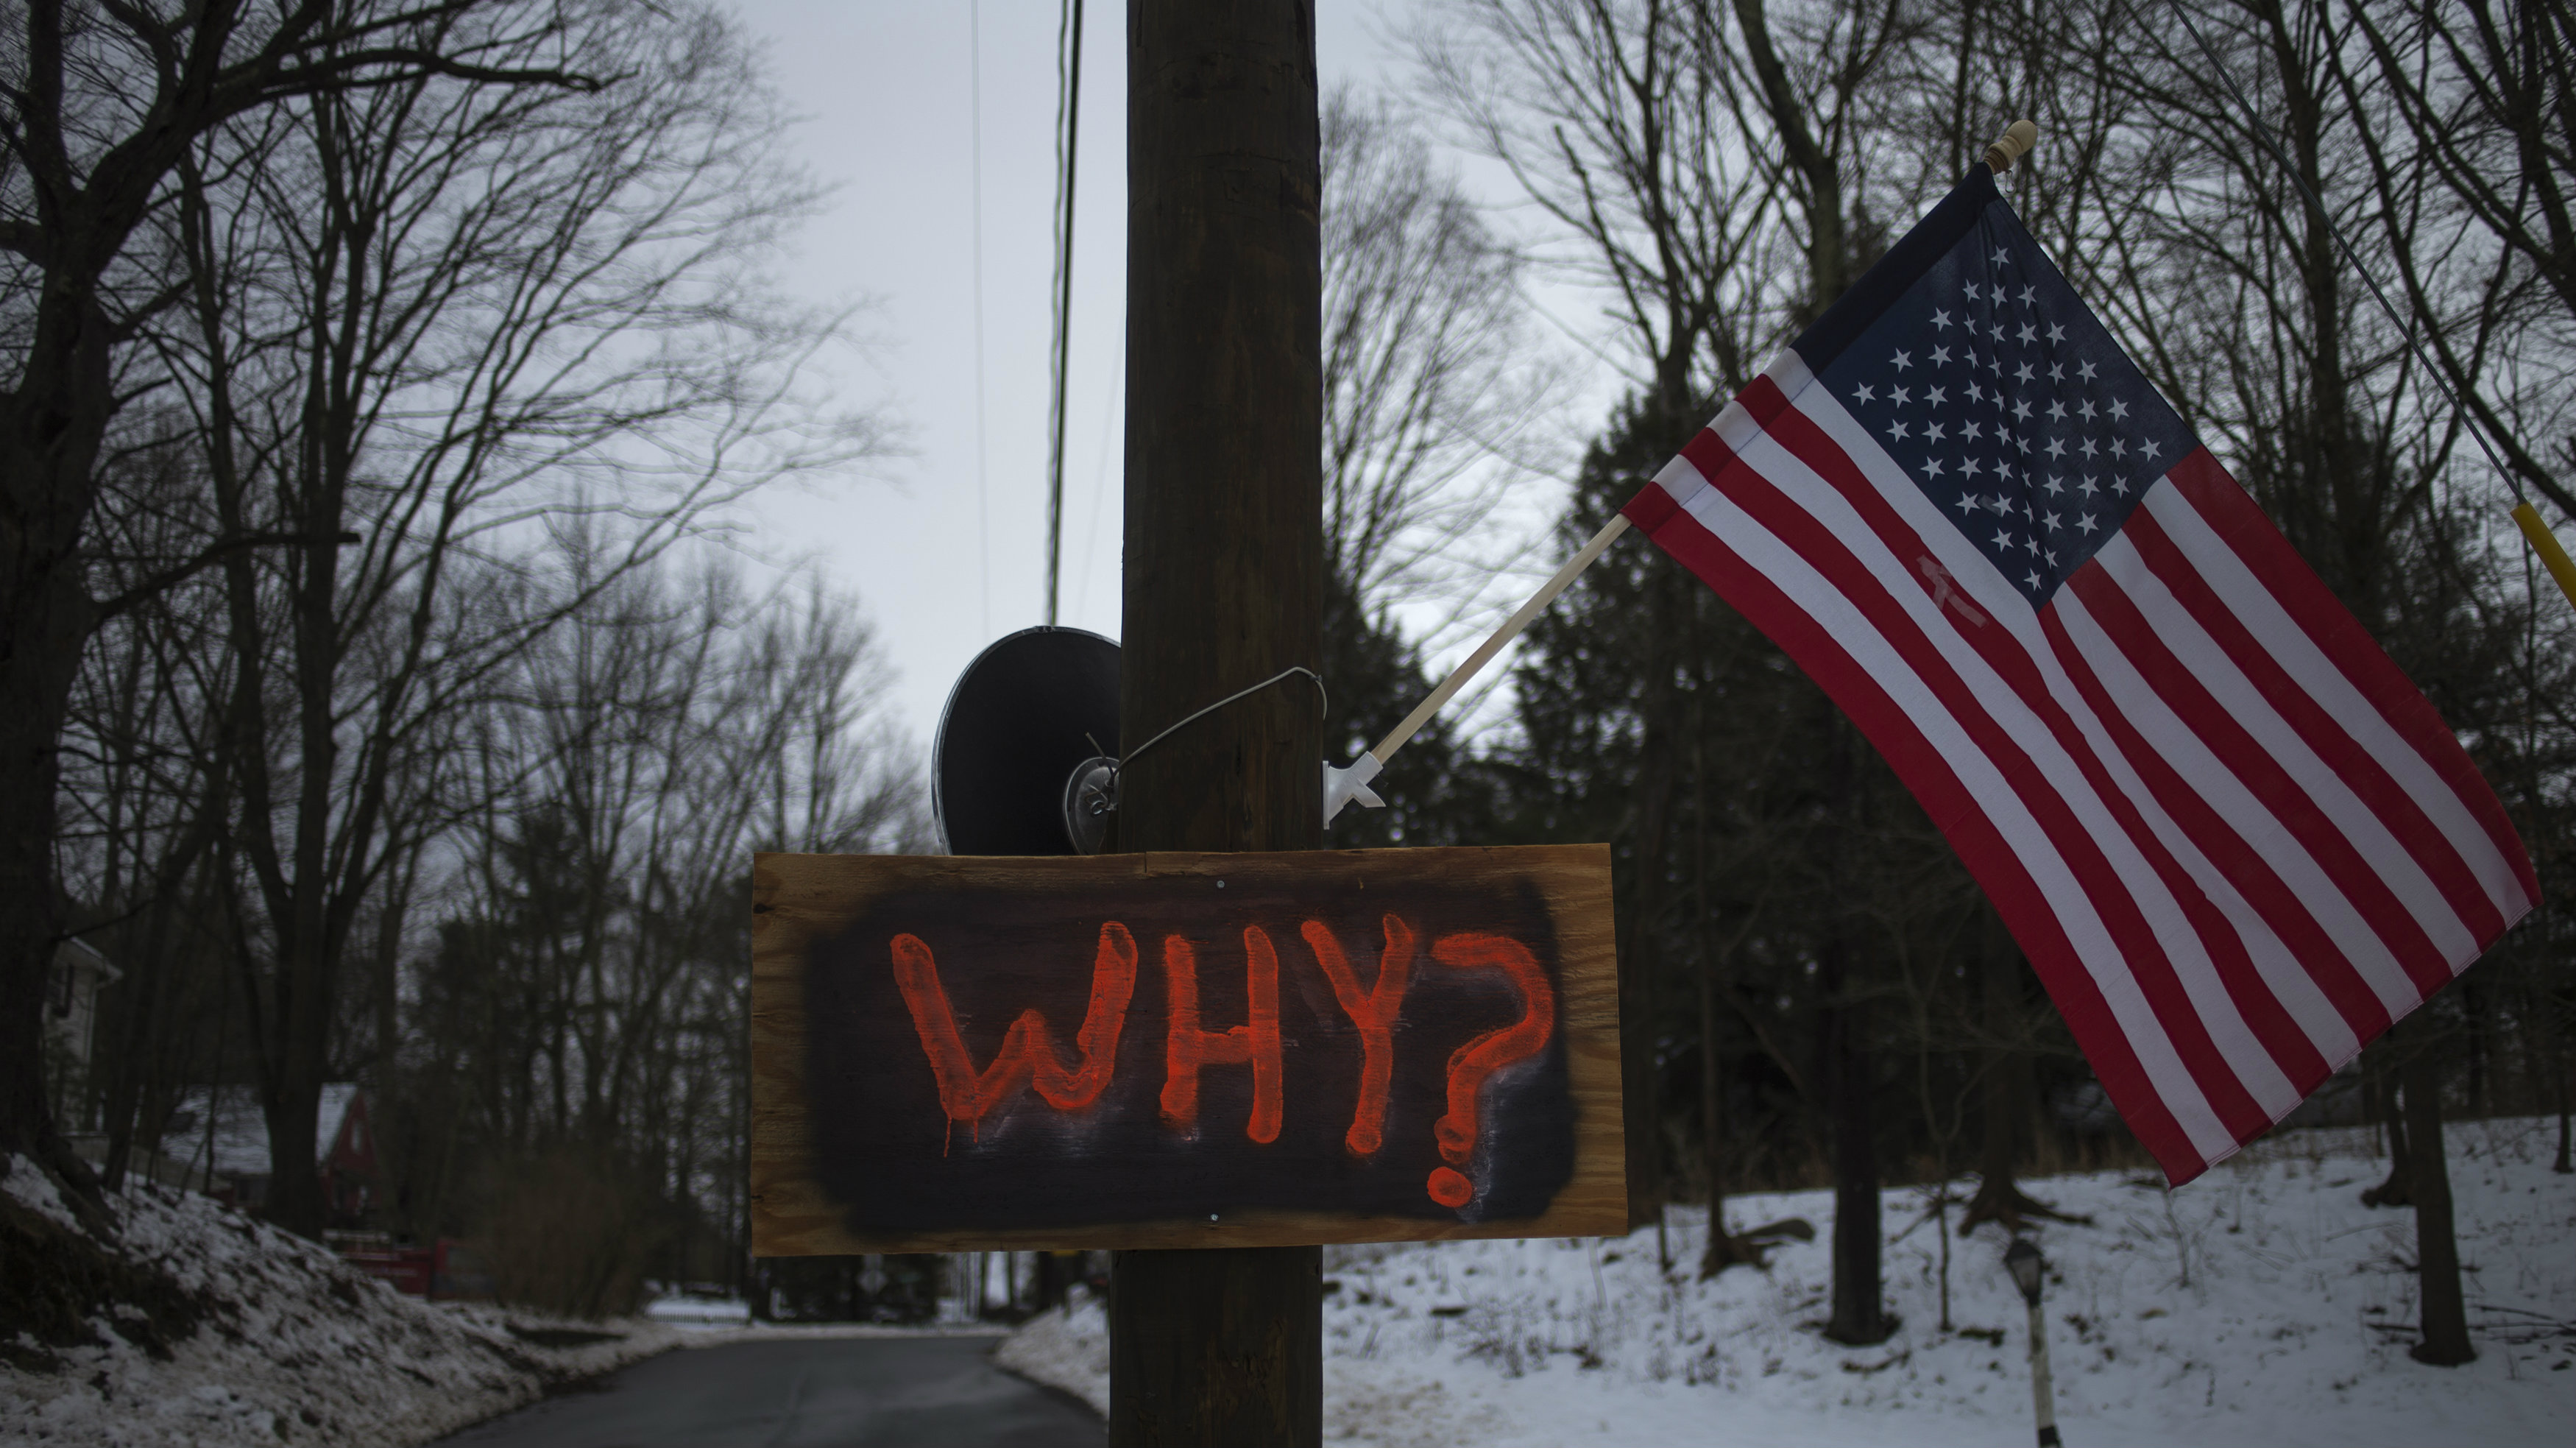 A sign is posted on an electricity pole outside a house near Sandy Hook Elementary School, nearly two weeks after a gunman shot dead 20 students and six adults, in Newtown, Connecticut December 27, 2012.